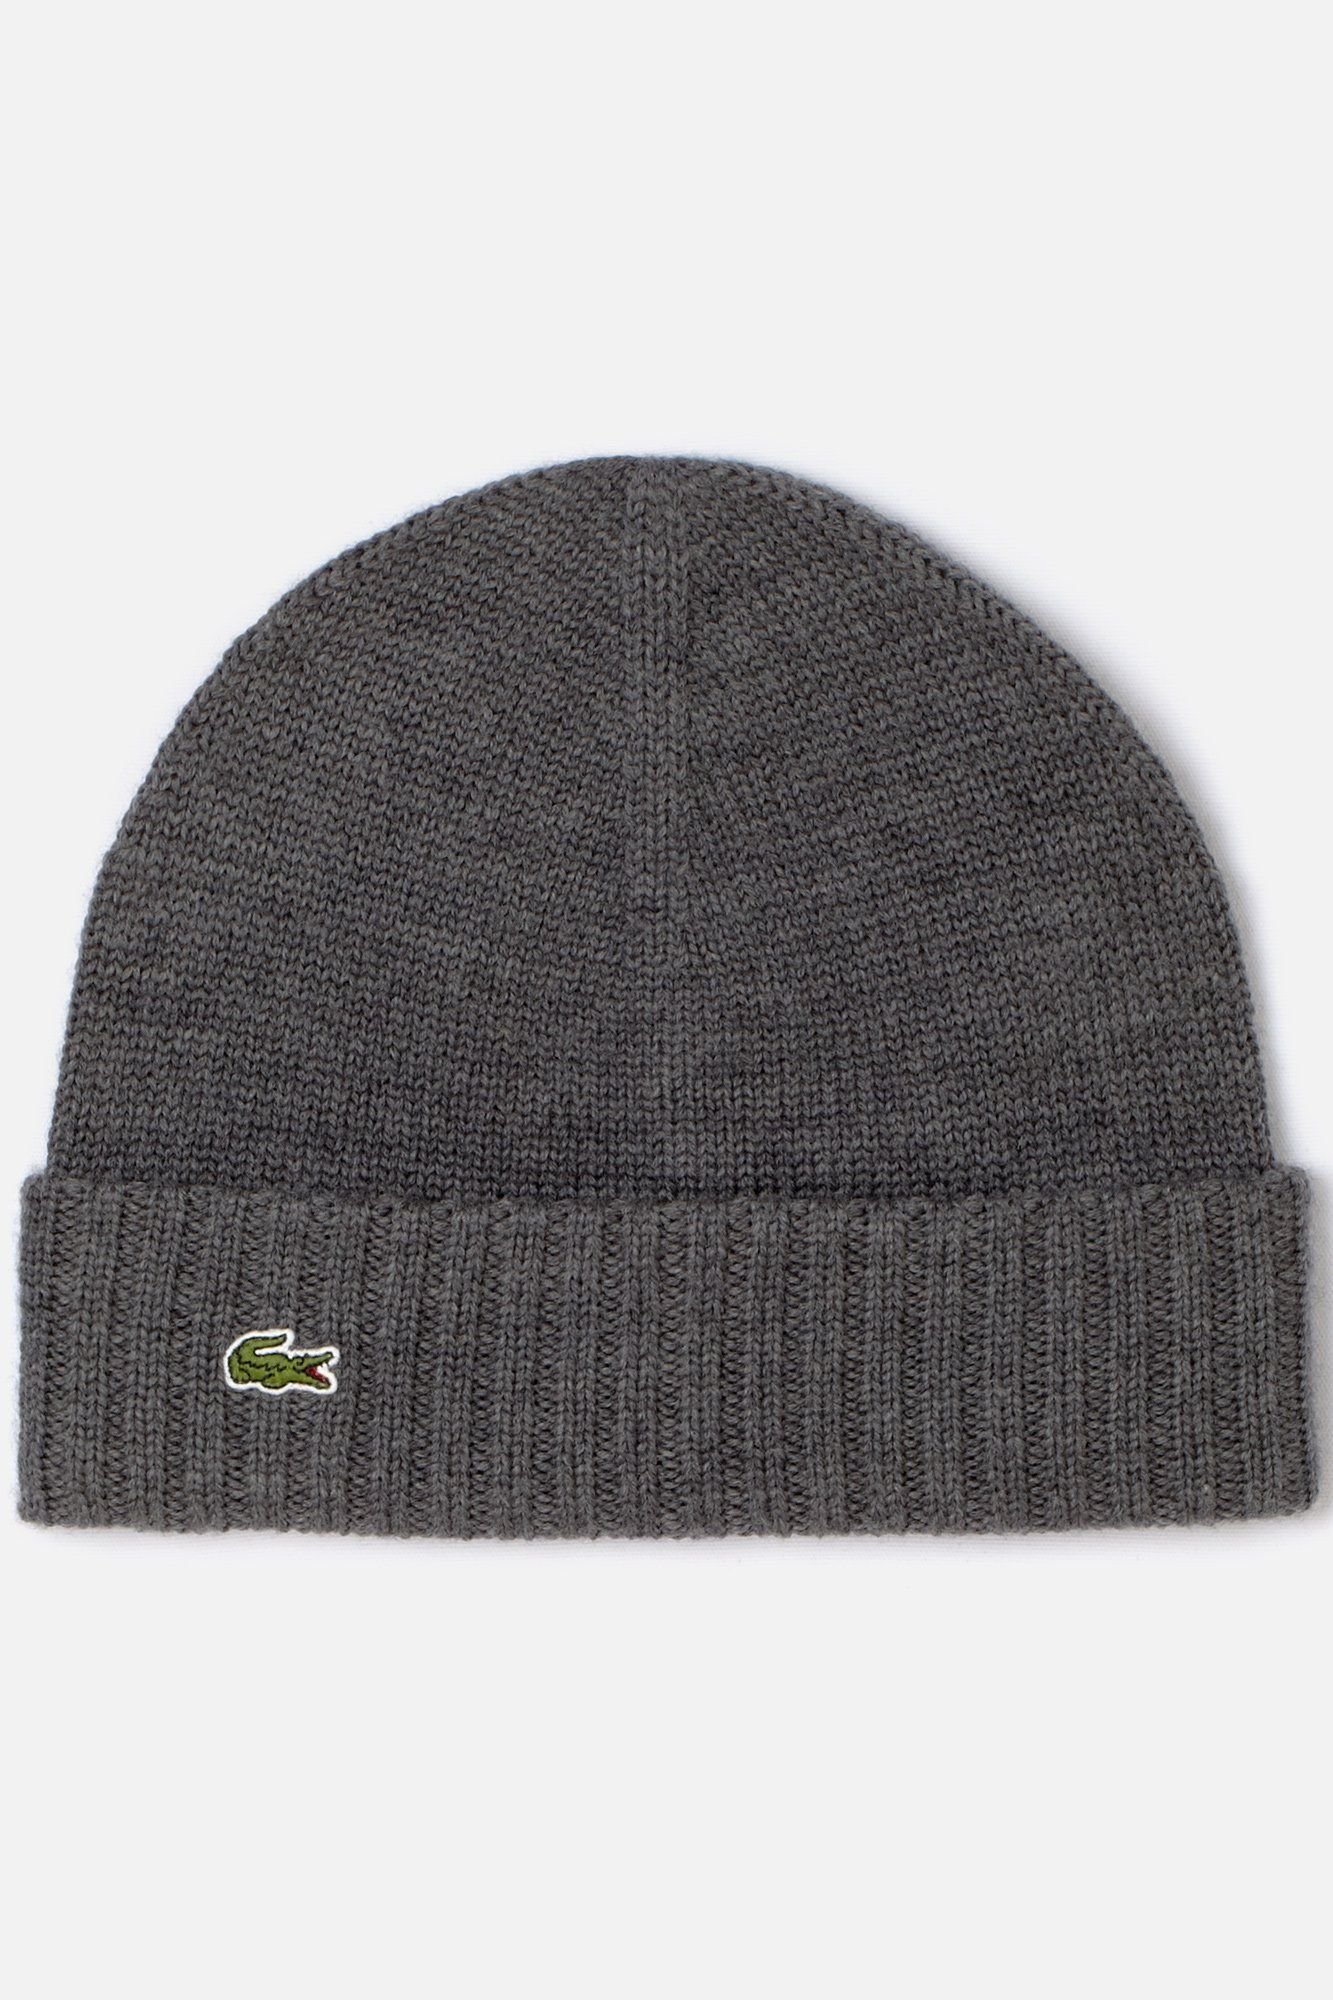 9854c73087 Lacoste Men's Green Croc Merino Knit Beanie : Caps & Hats | Fashion ...